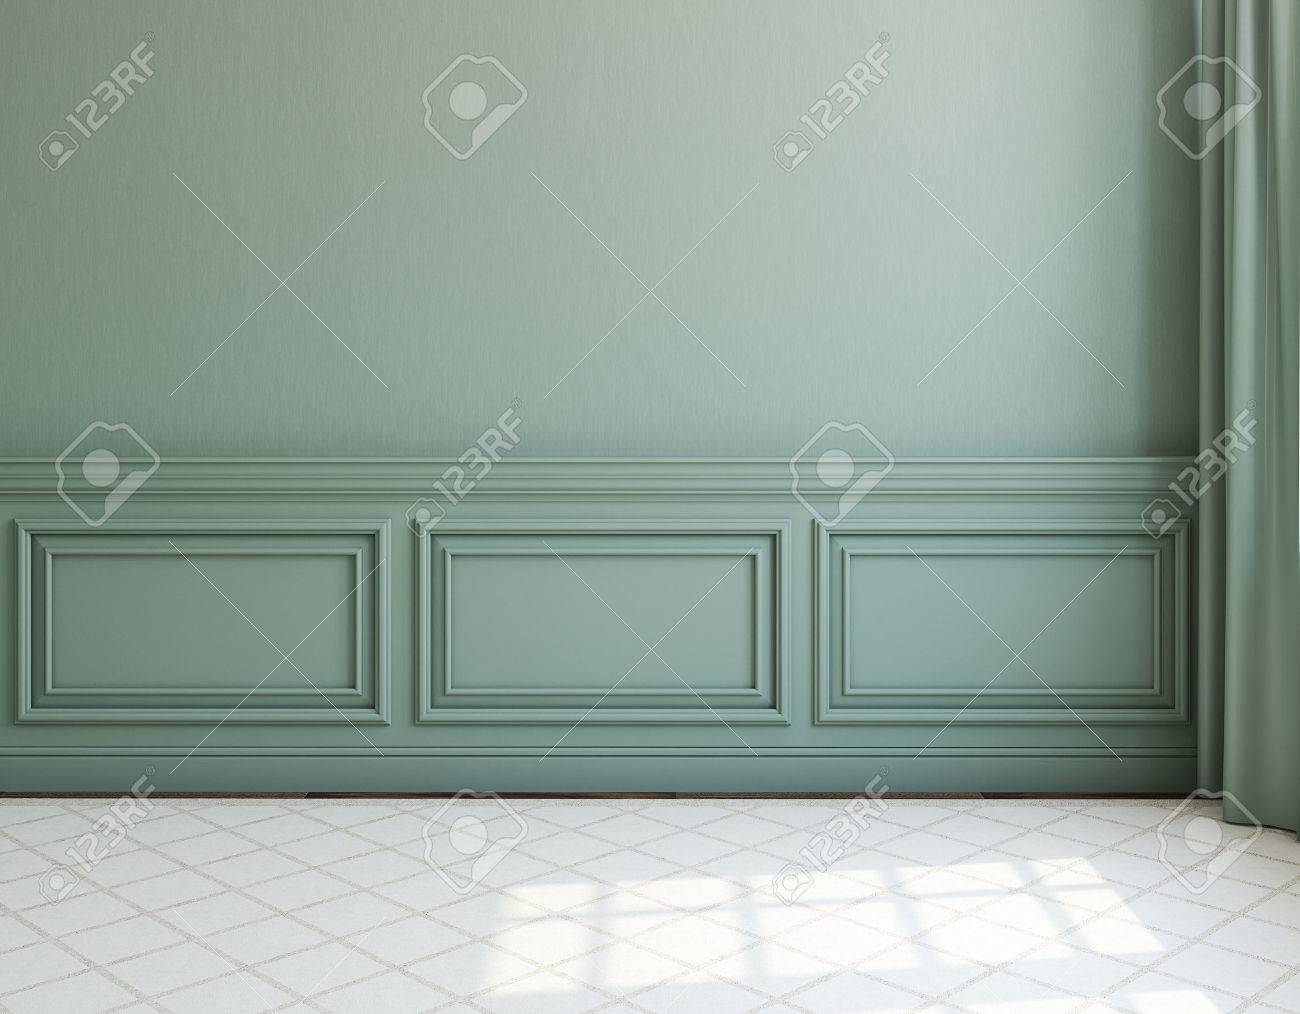 Interior. Empty room with dack wall and light rug. 3d render. - 54382471